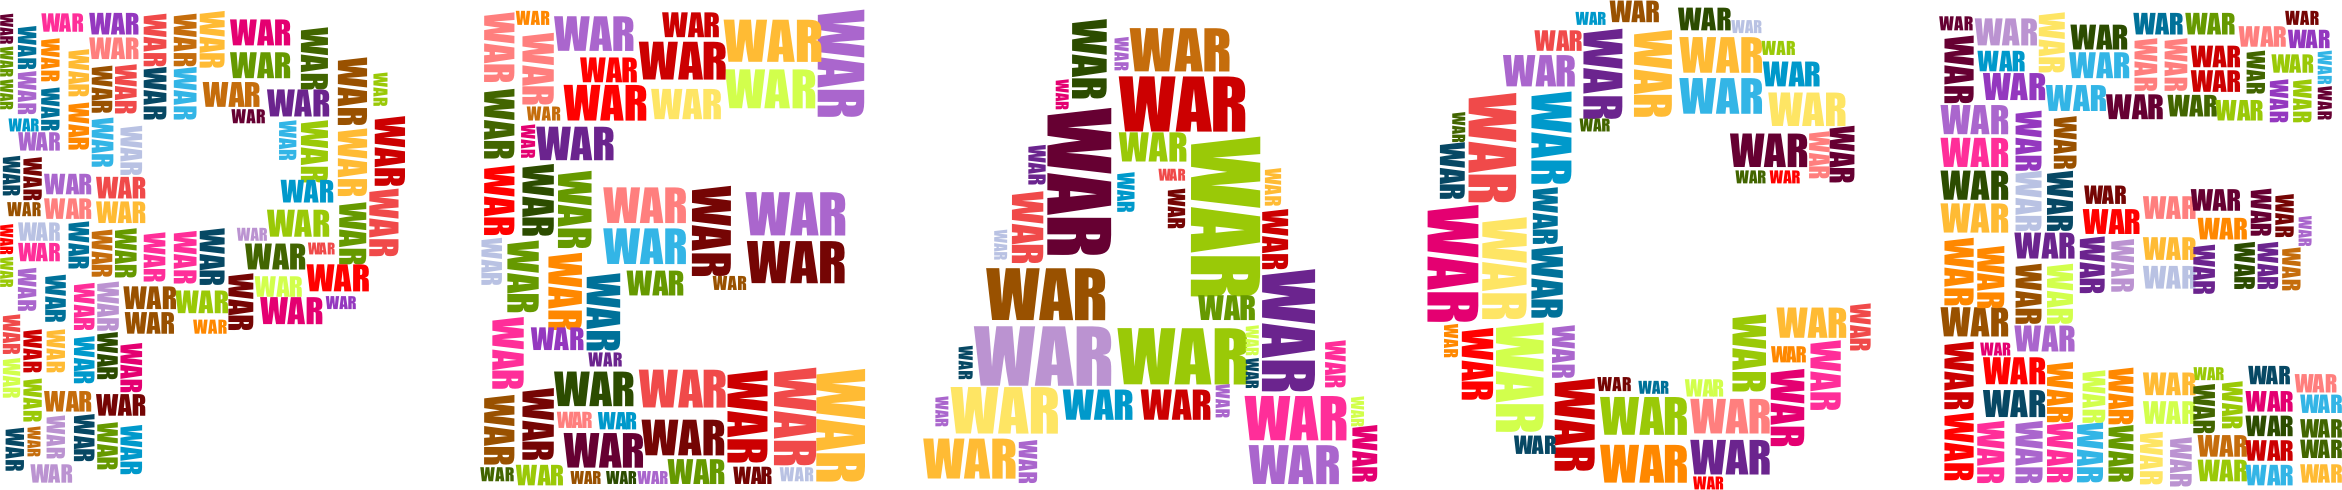 Peace clipart word wisdom. And war big image